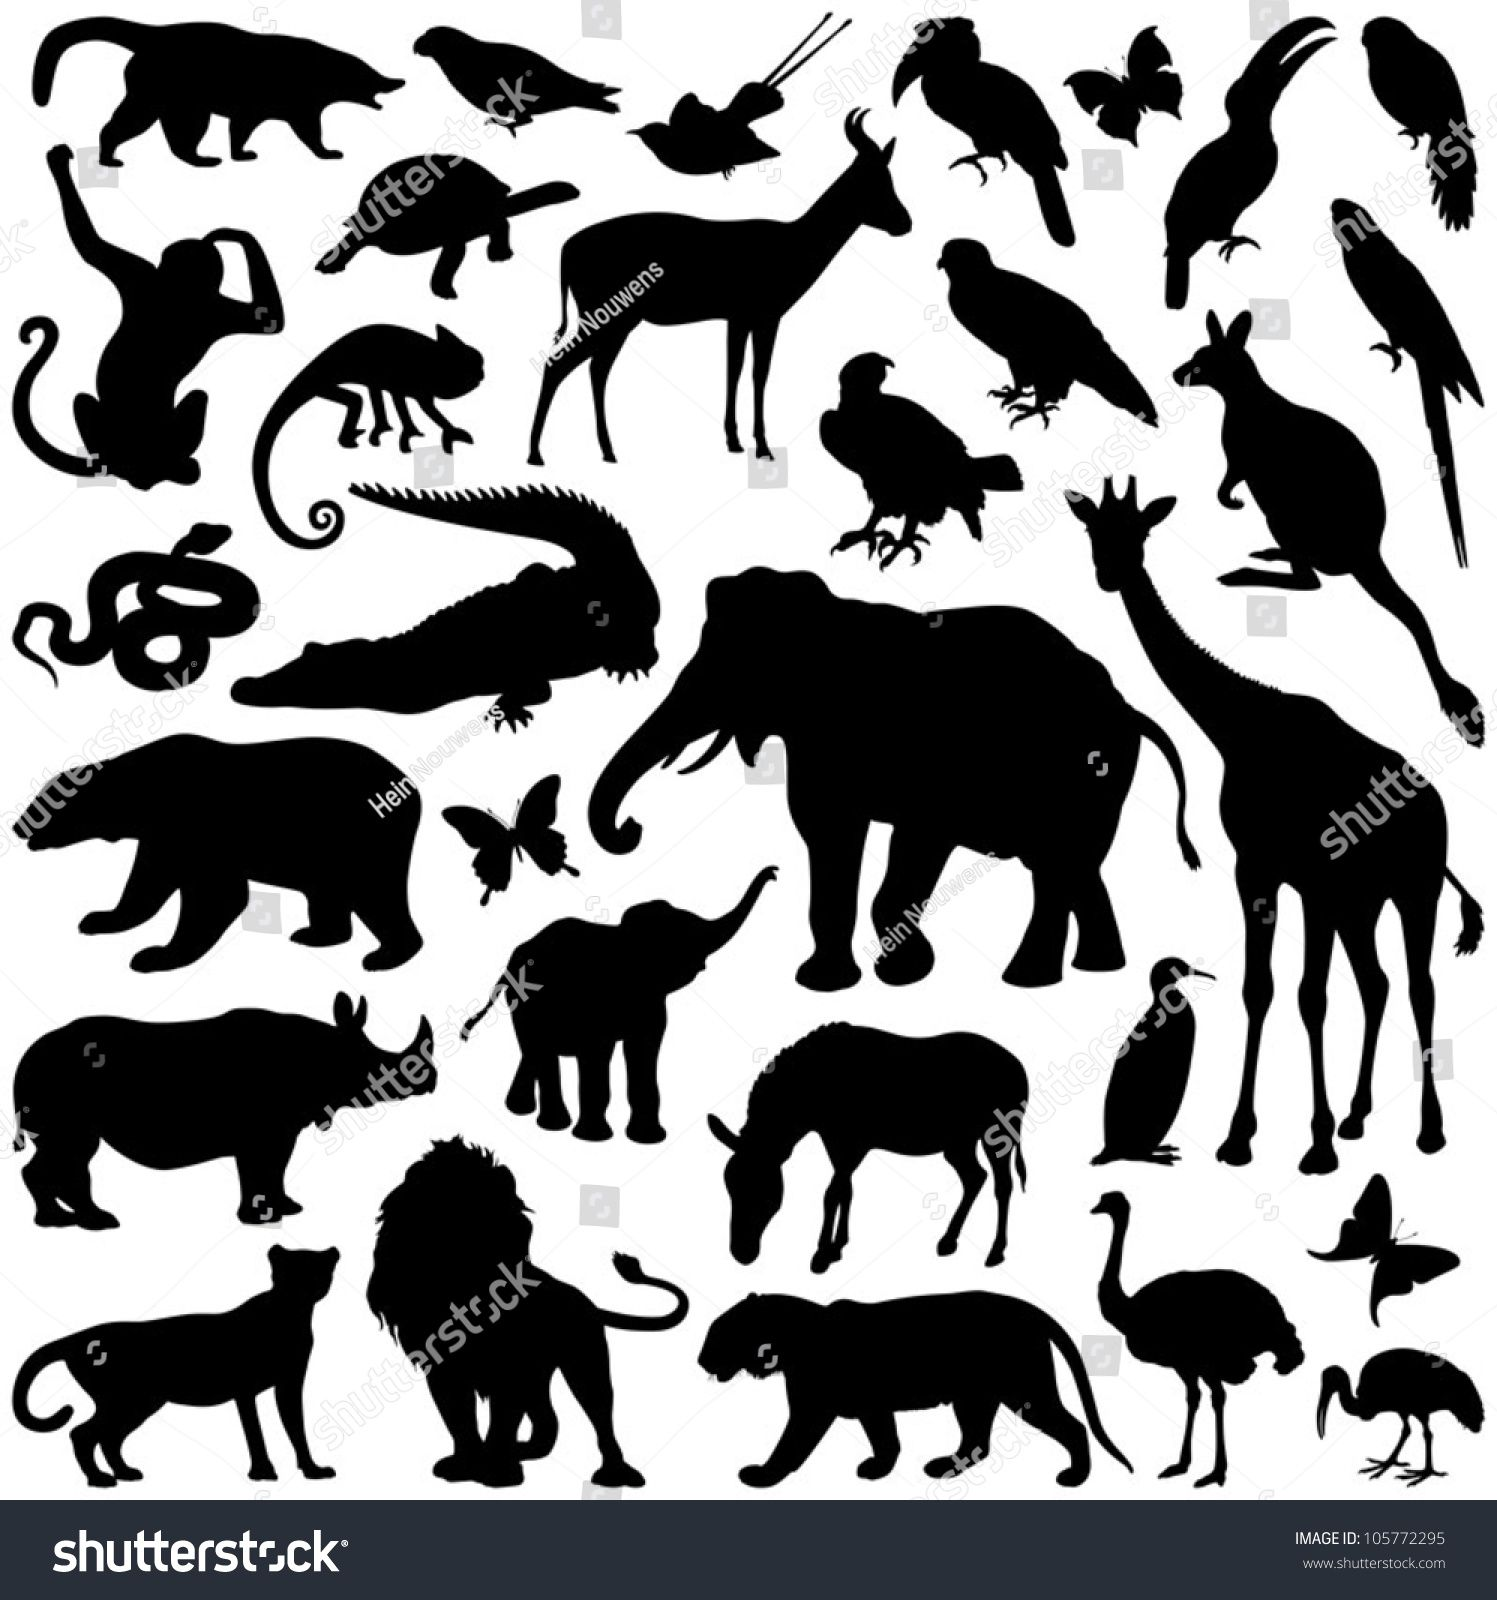 Zoo animals collection vector silhouette (With images